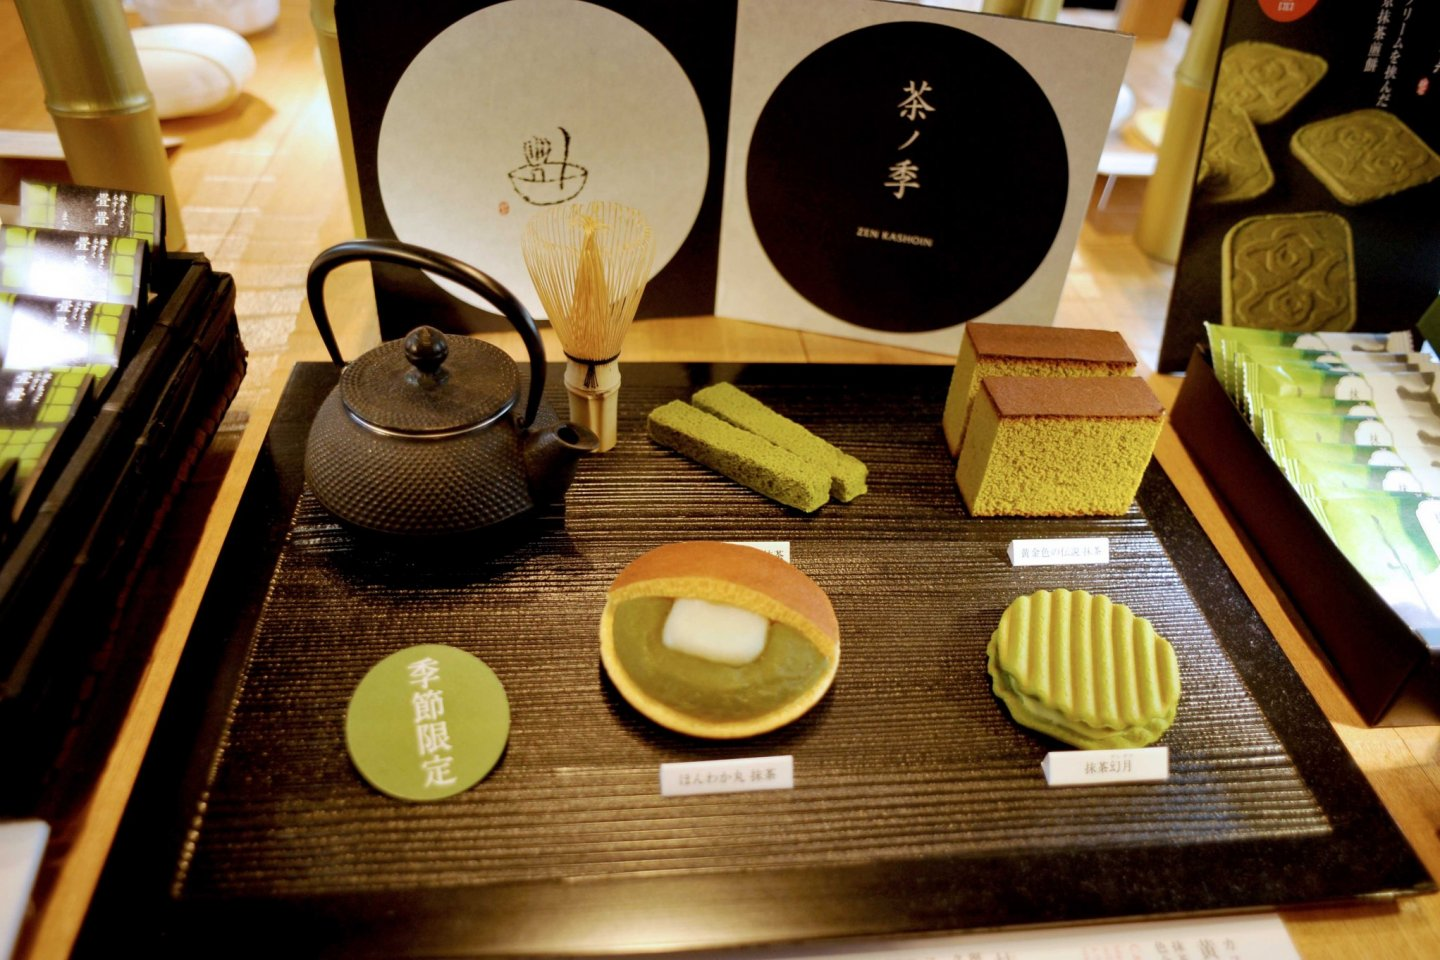 The matcha collection of sweets and cakes